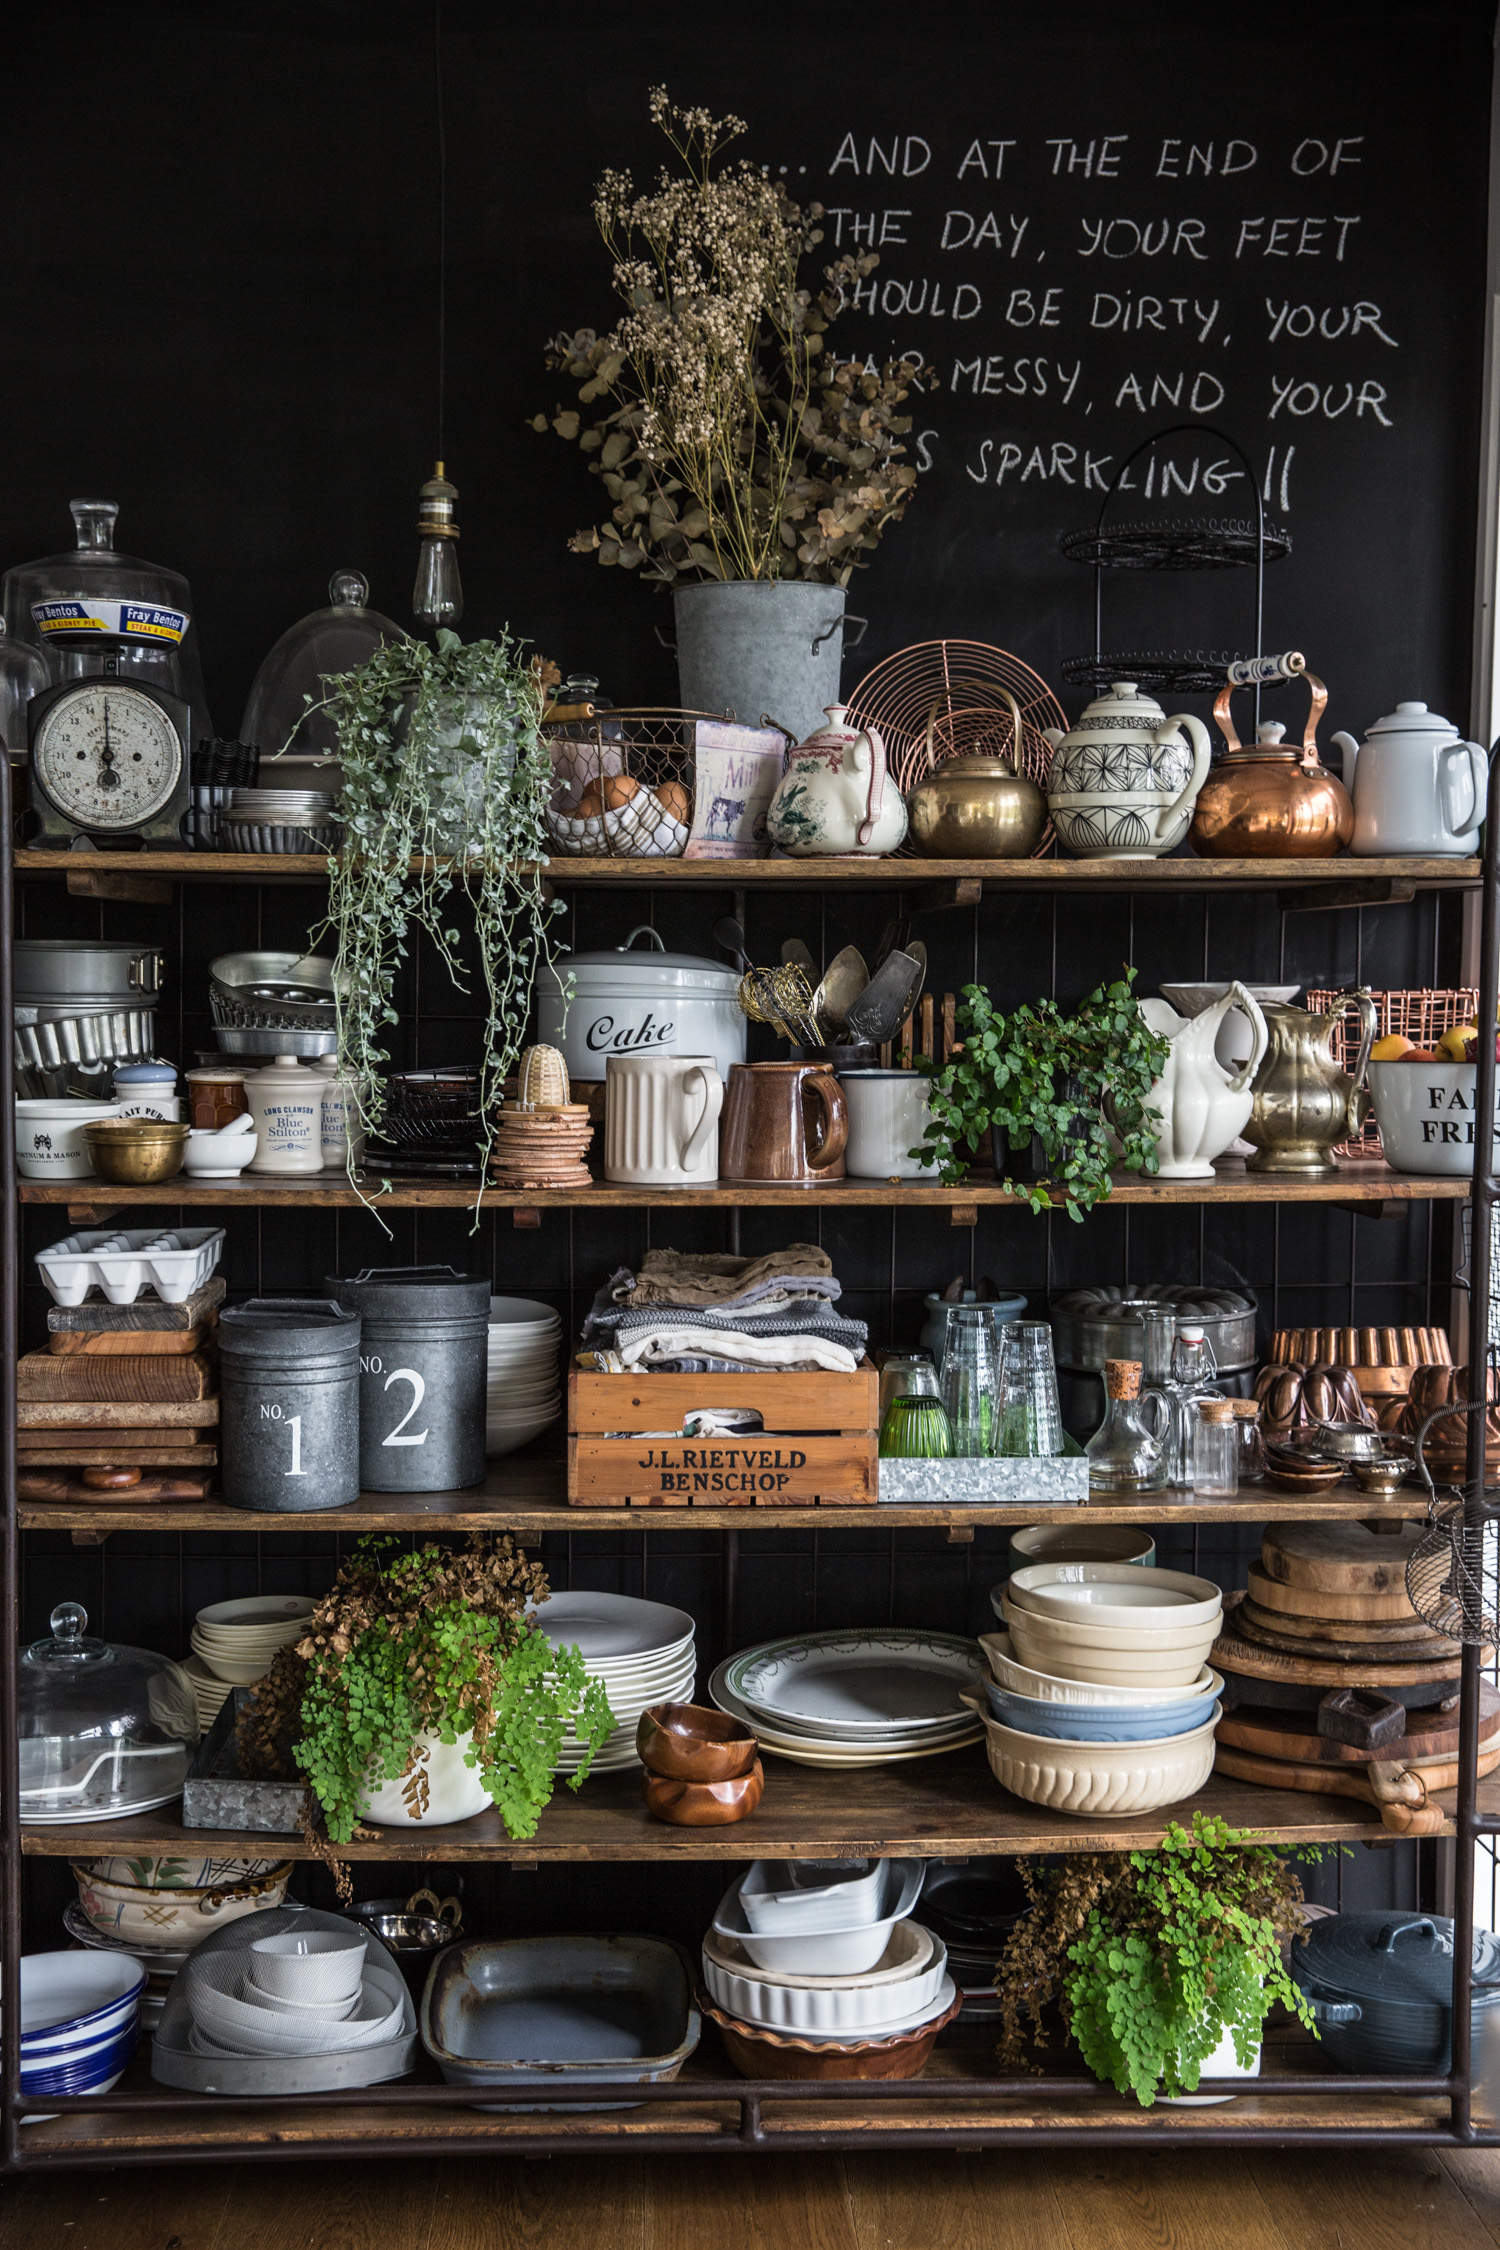 Sneak Peek: Check Out the Cook Republic Kitchen Designed to Share, on Design*Sponge